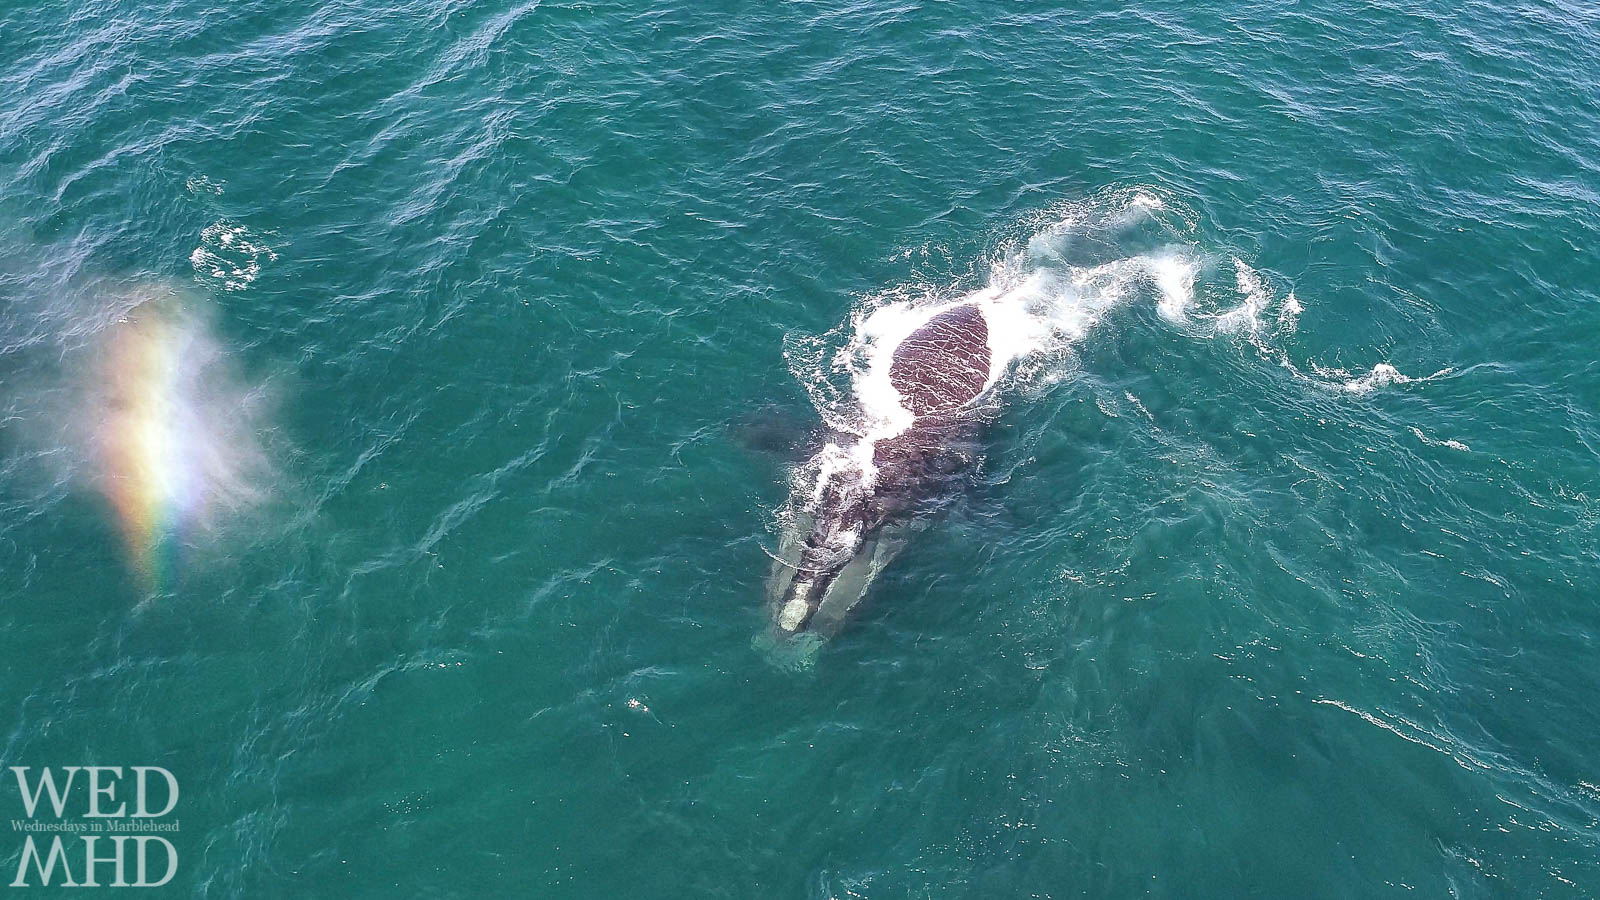 A right whale is seen from this aerial view in the waters off Marblehead with a plume of water creating a rainbow in the sky